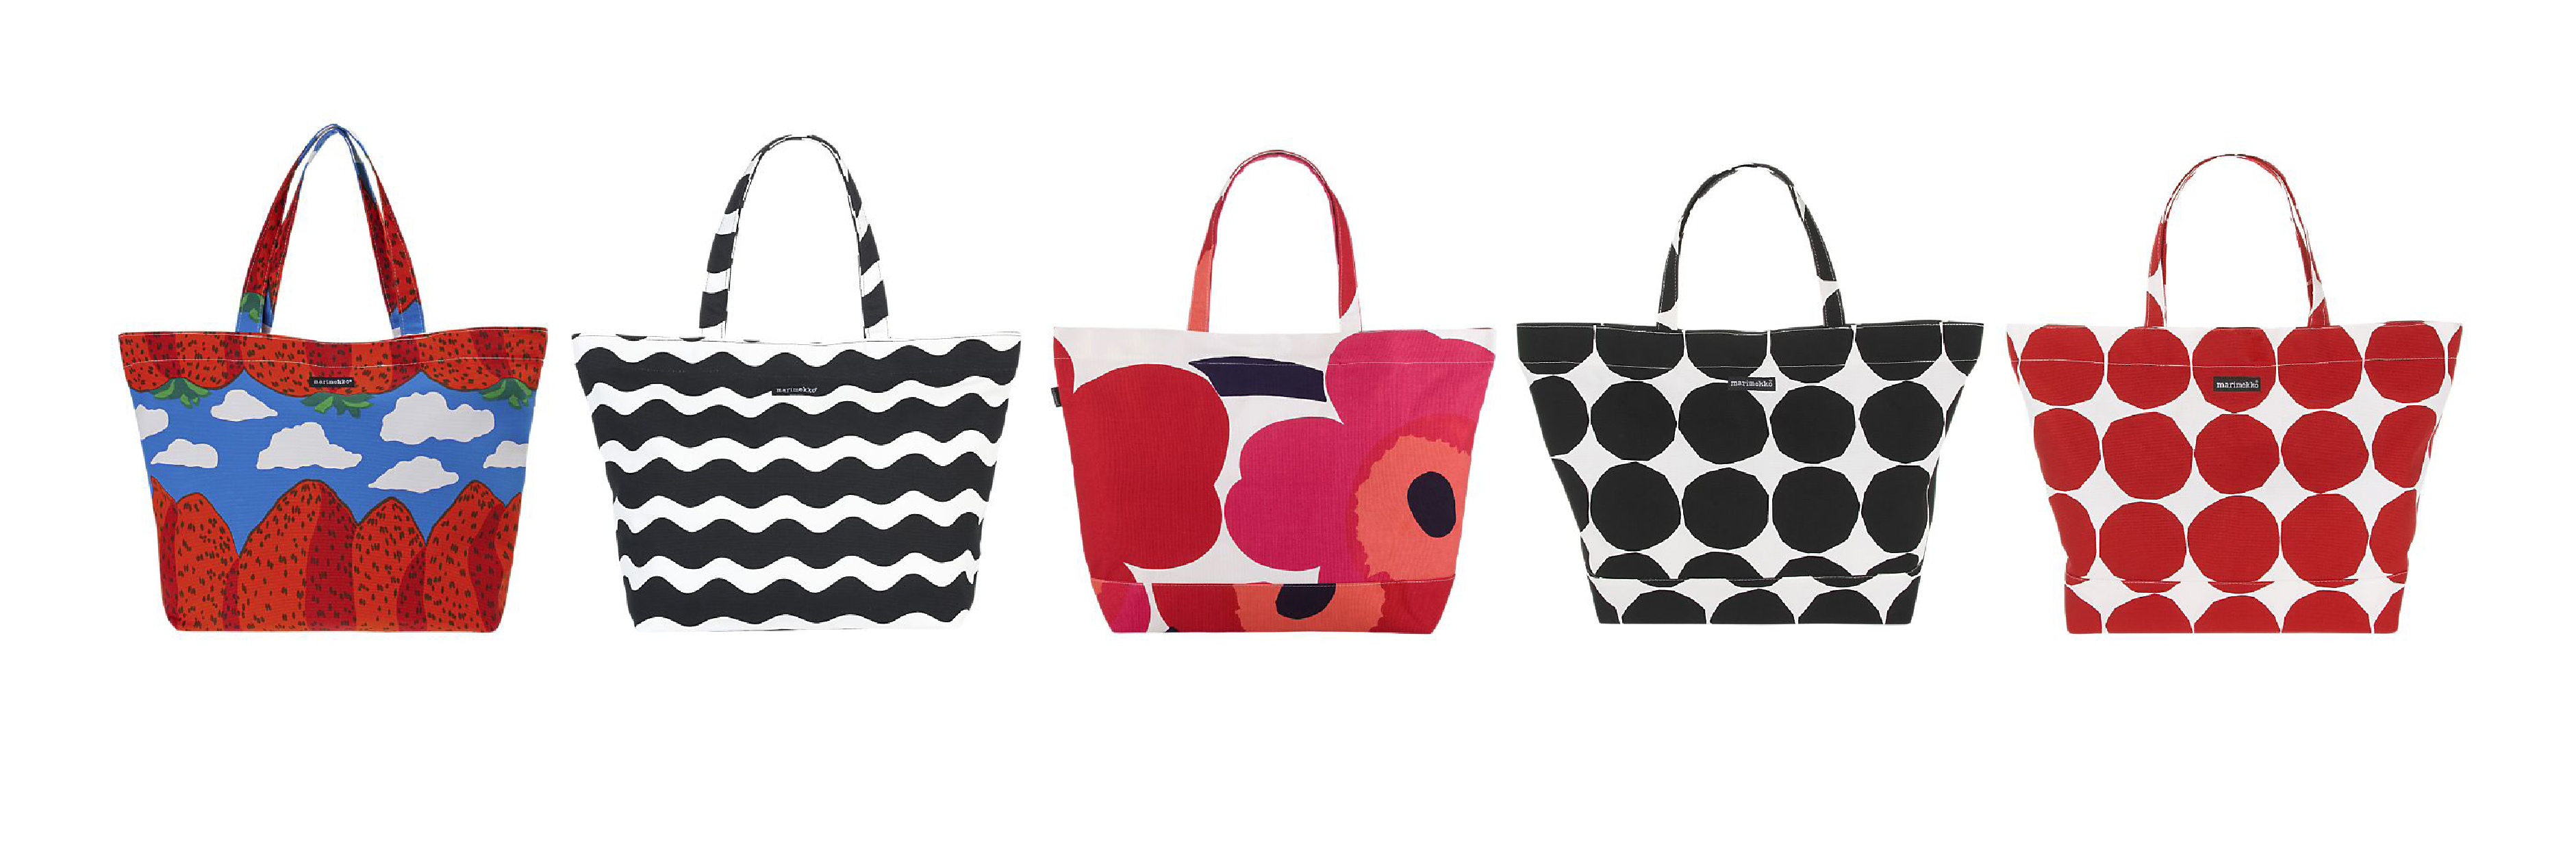 Marimekko totes in (left to right) Maija Isola's Mansikkavouret print, Pentti Rinta's Lorina pattern, Isola's iconic Unikko print, Isola's Kivet print in black and white, and Kivet in red and white.